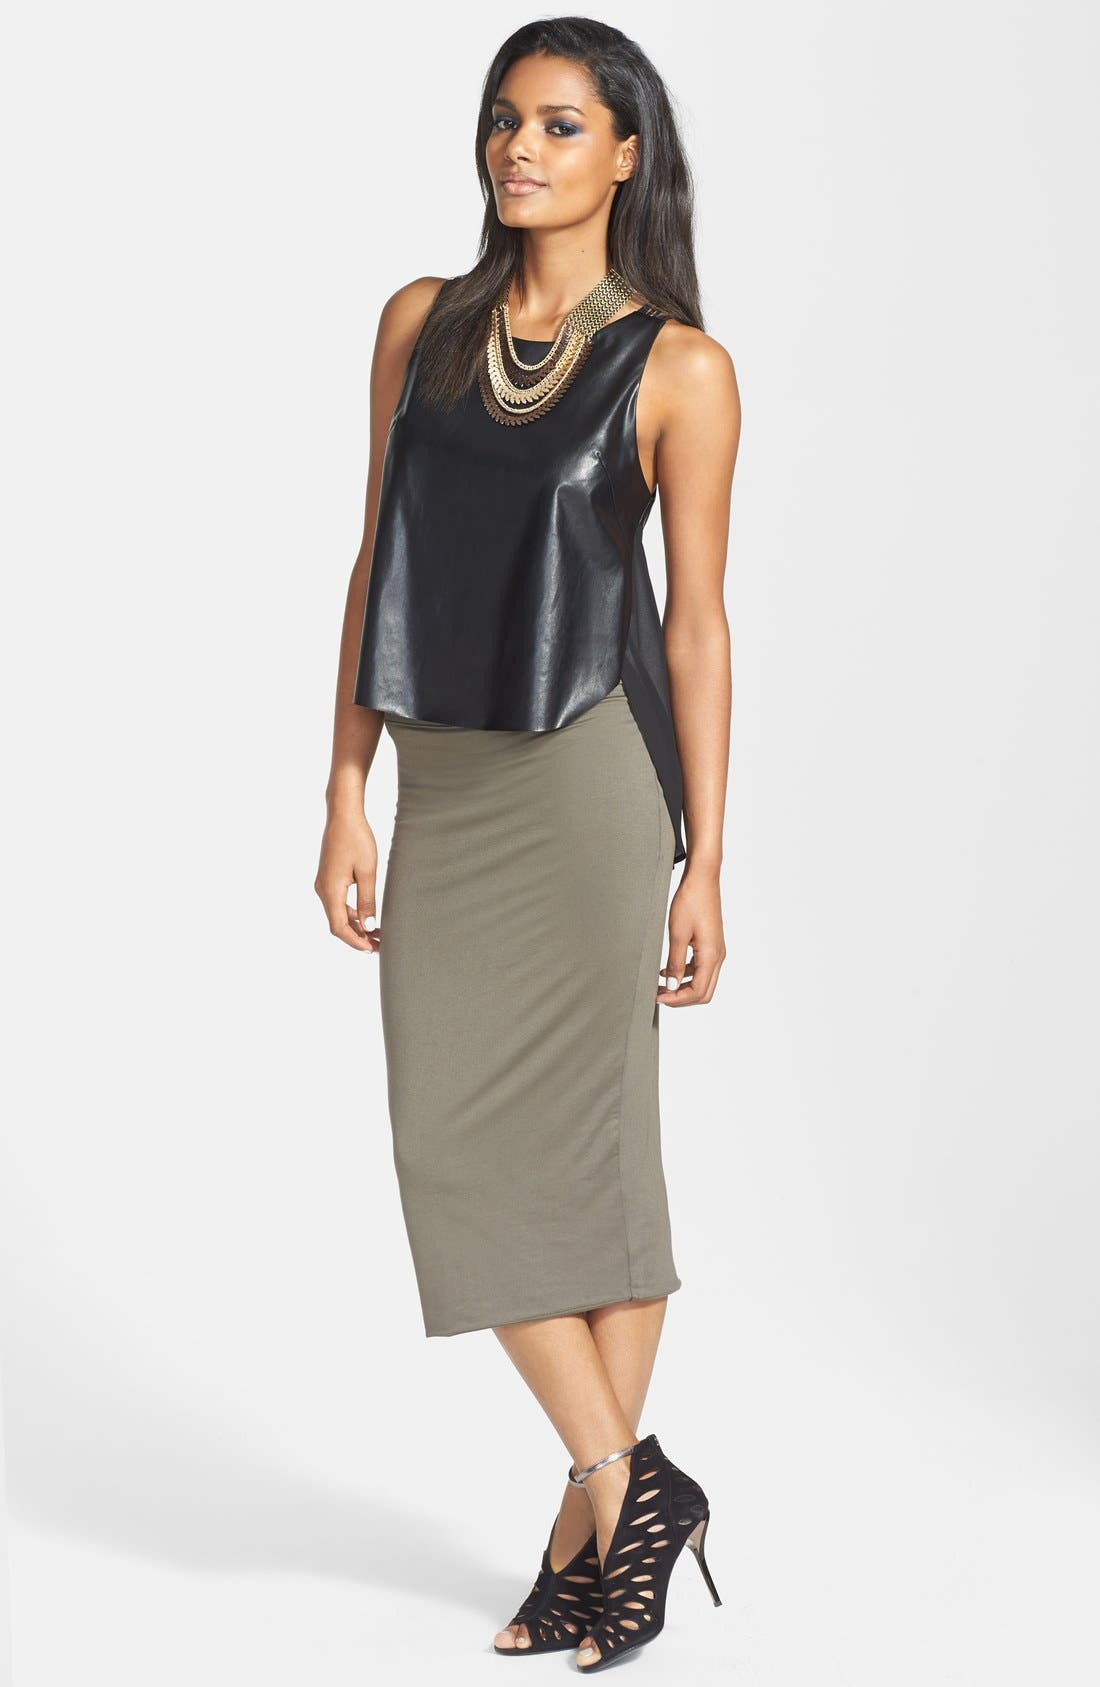 Main Image - ASTR Chiffon Panel Faux Leather Tank